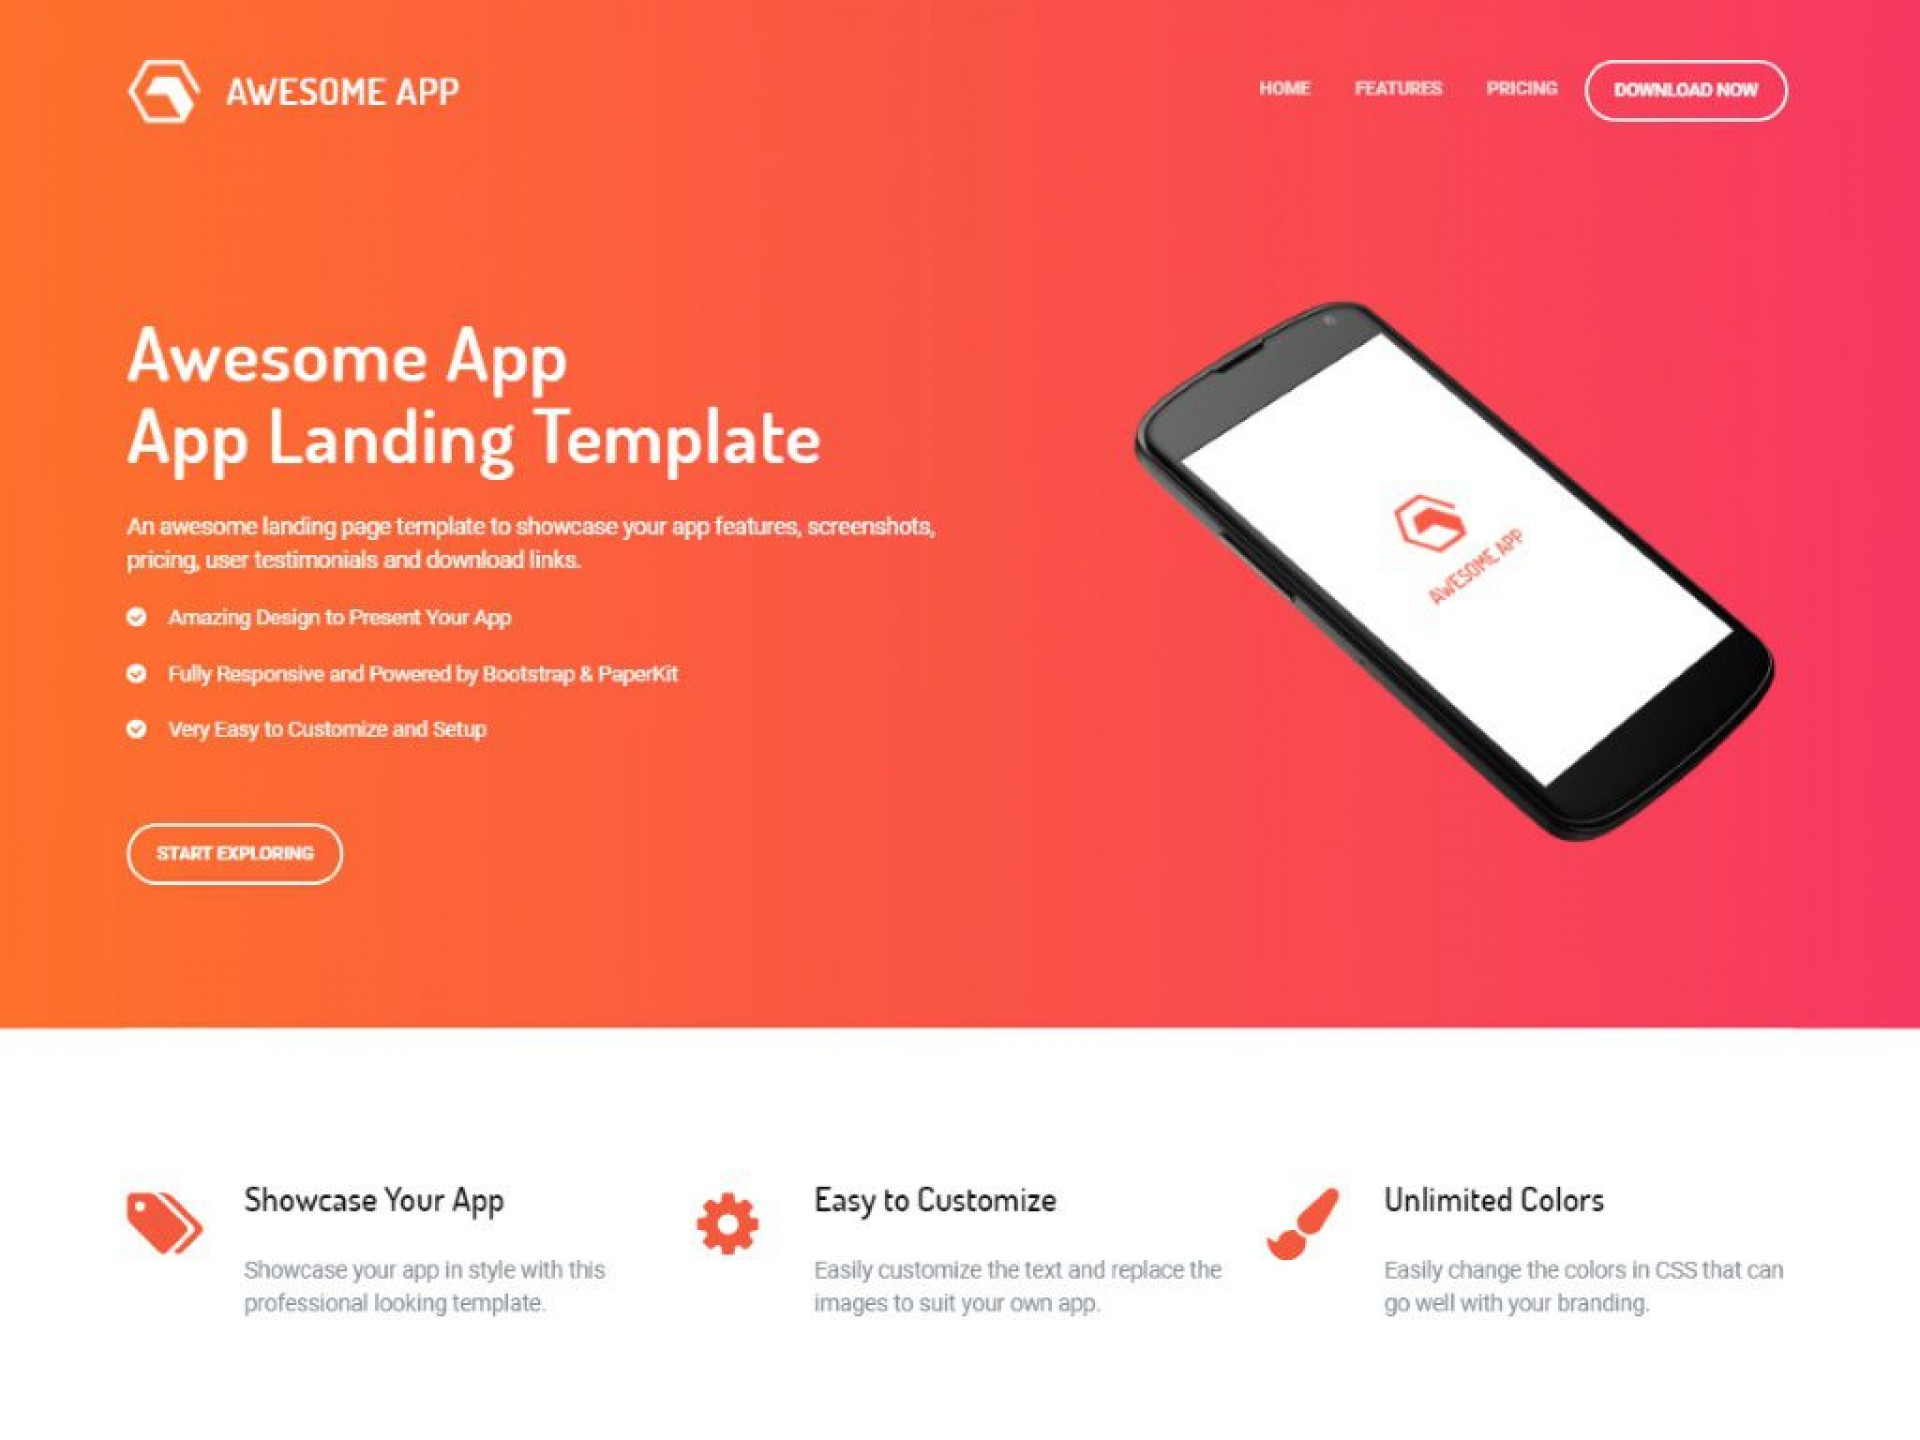 002 Dreaded Bootstrap Mobile App Template Image  Html5 Form 41920